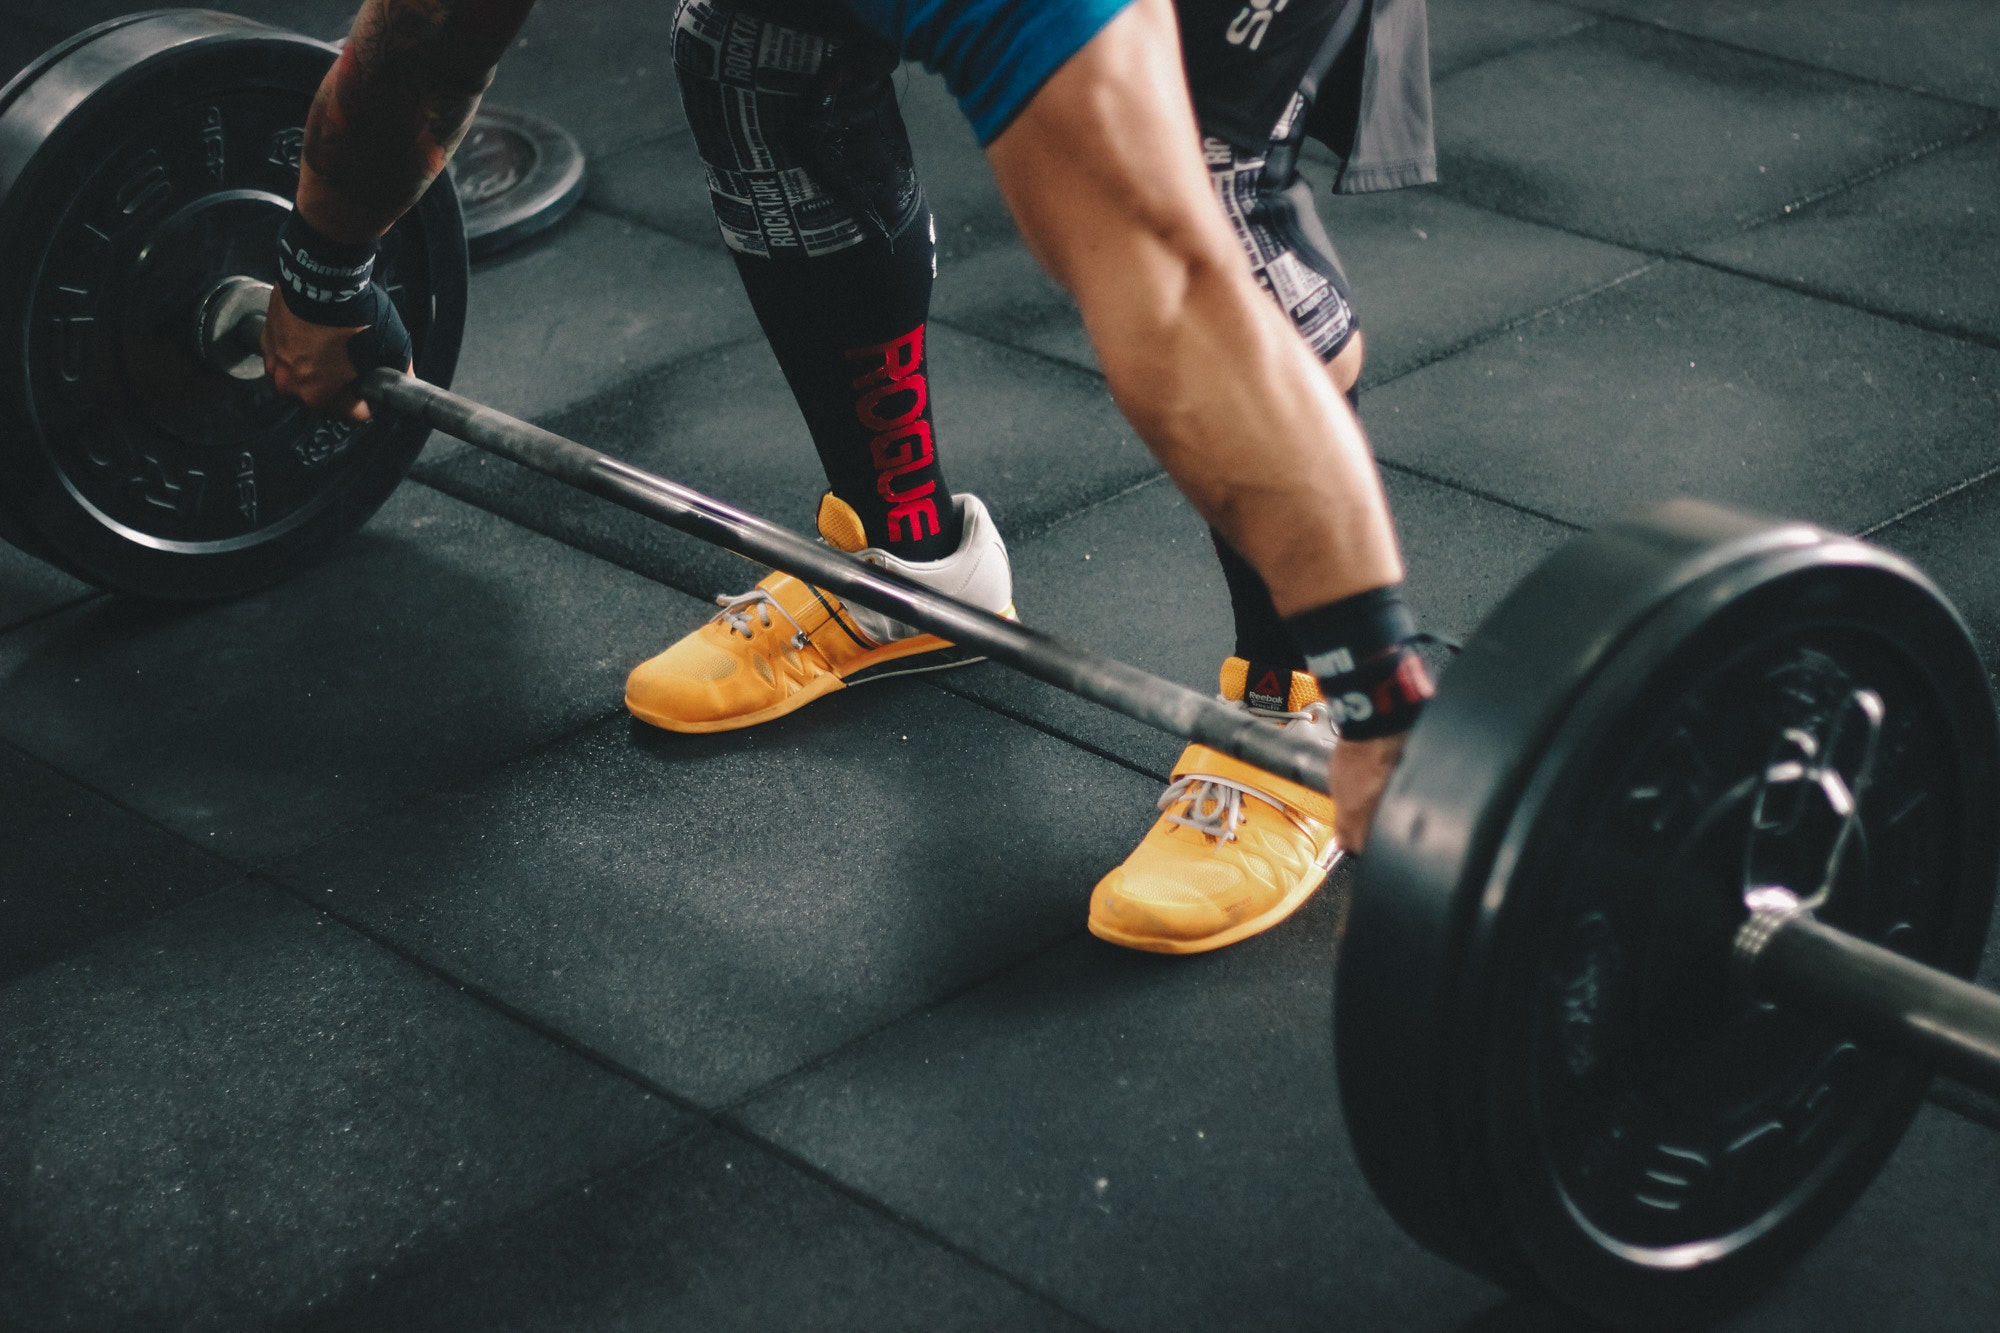 Person About to Start Lifting the Barbell Inside the Gym, Action, Sports equipment, Muscles, Person, HQ Photo